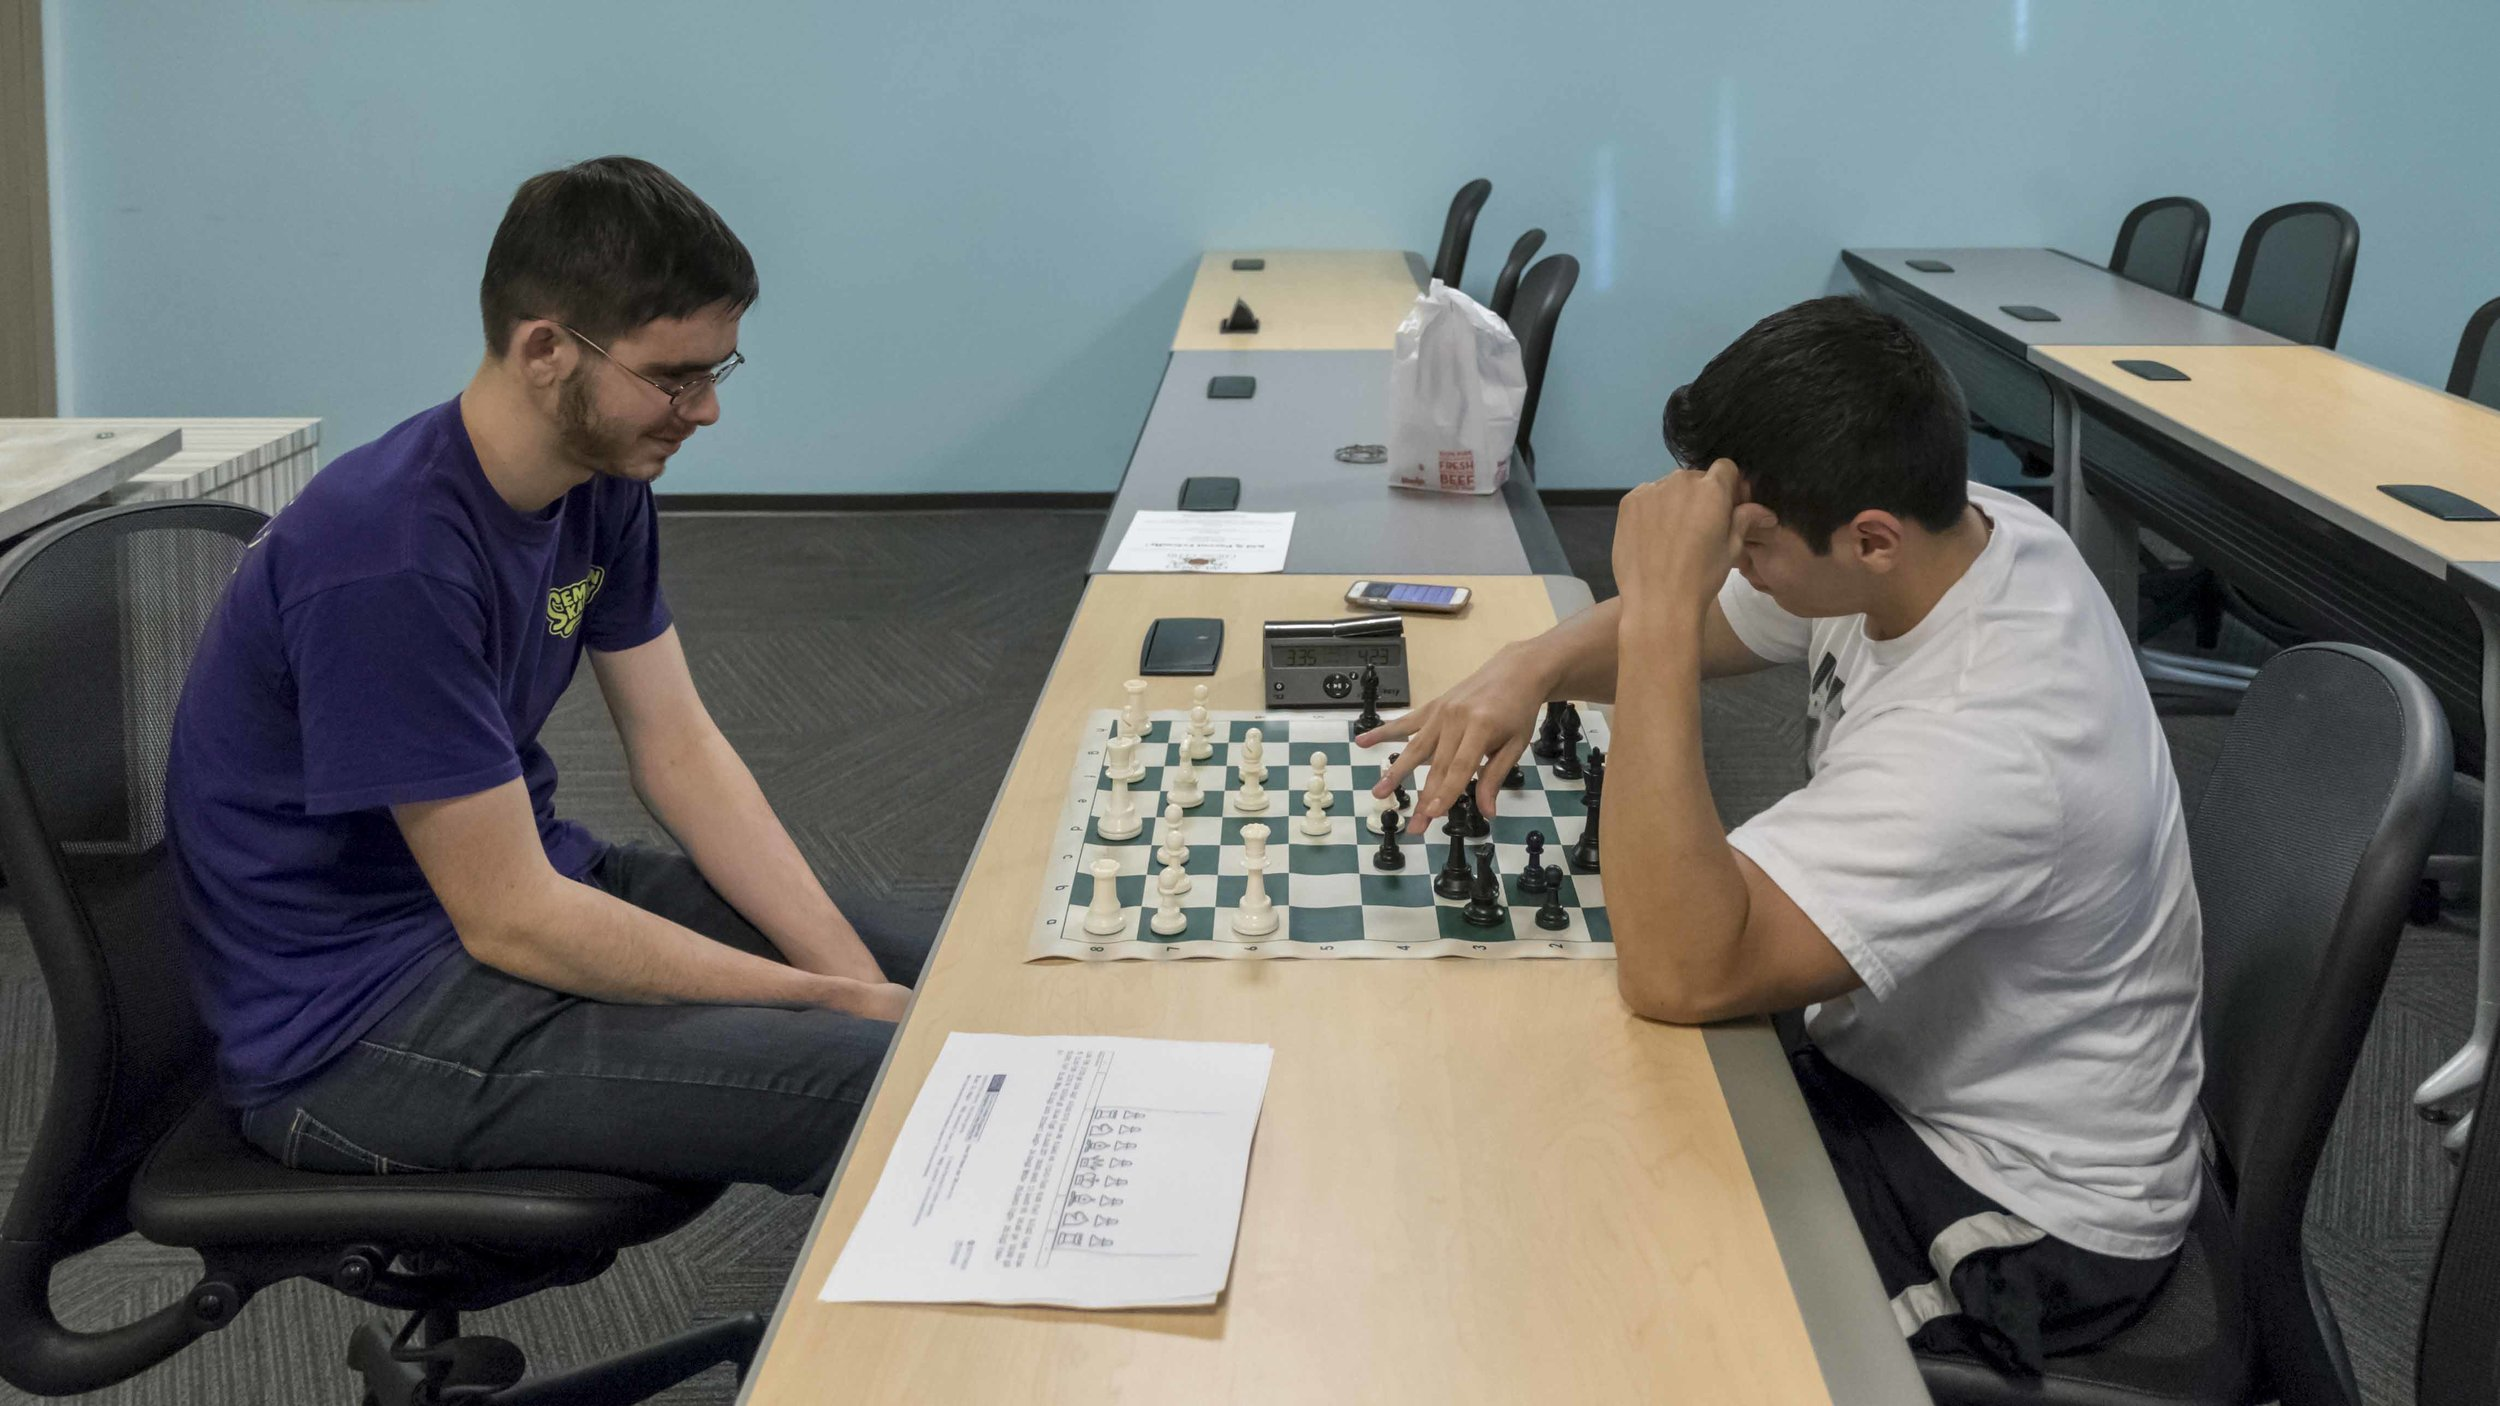 NM John Ludwig (2450) (L) in a casual game with Rafael Rasado (1282) (R)